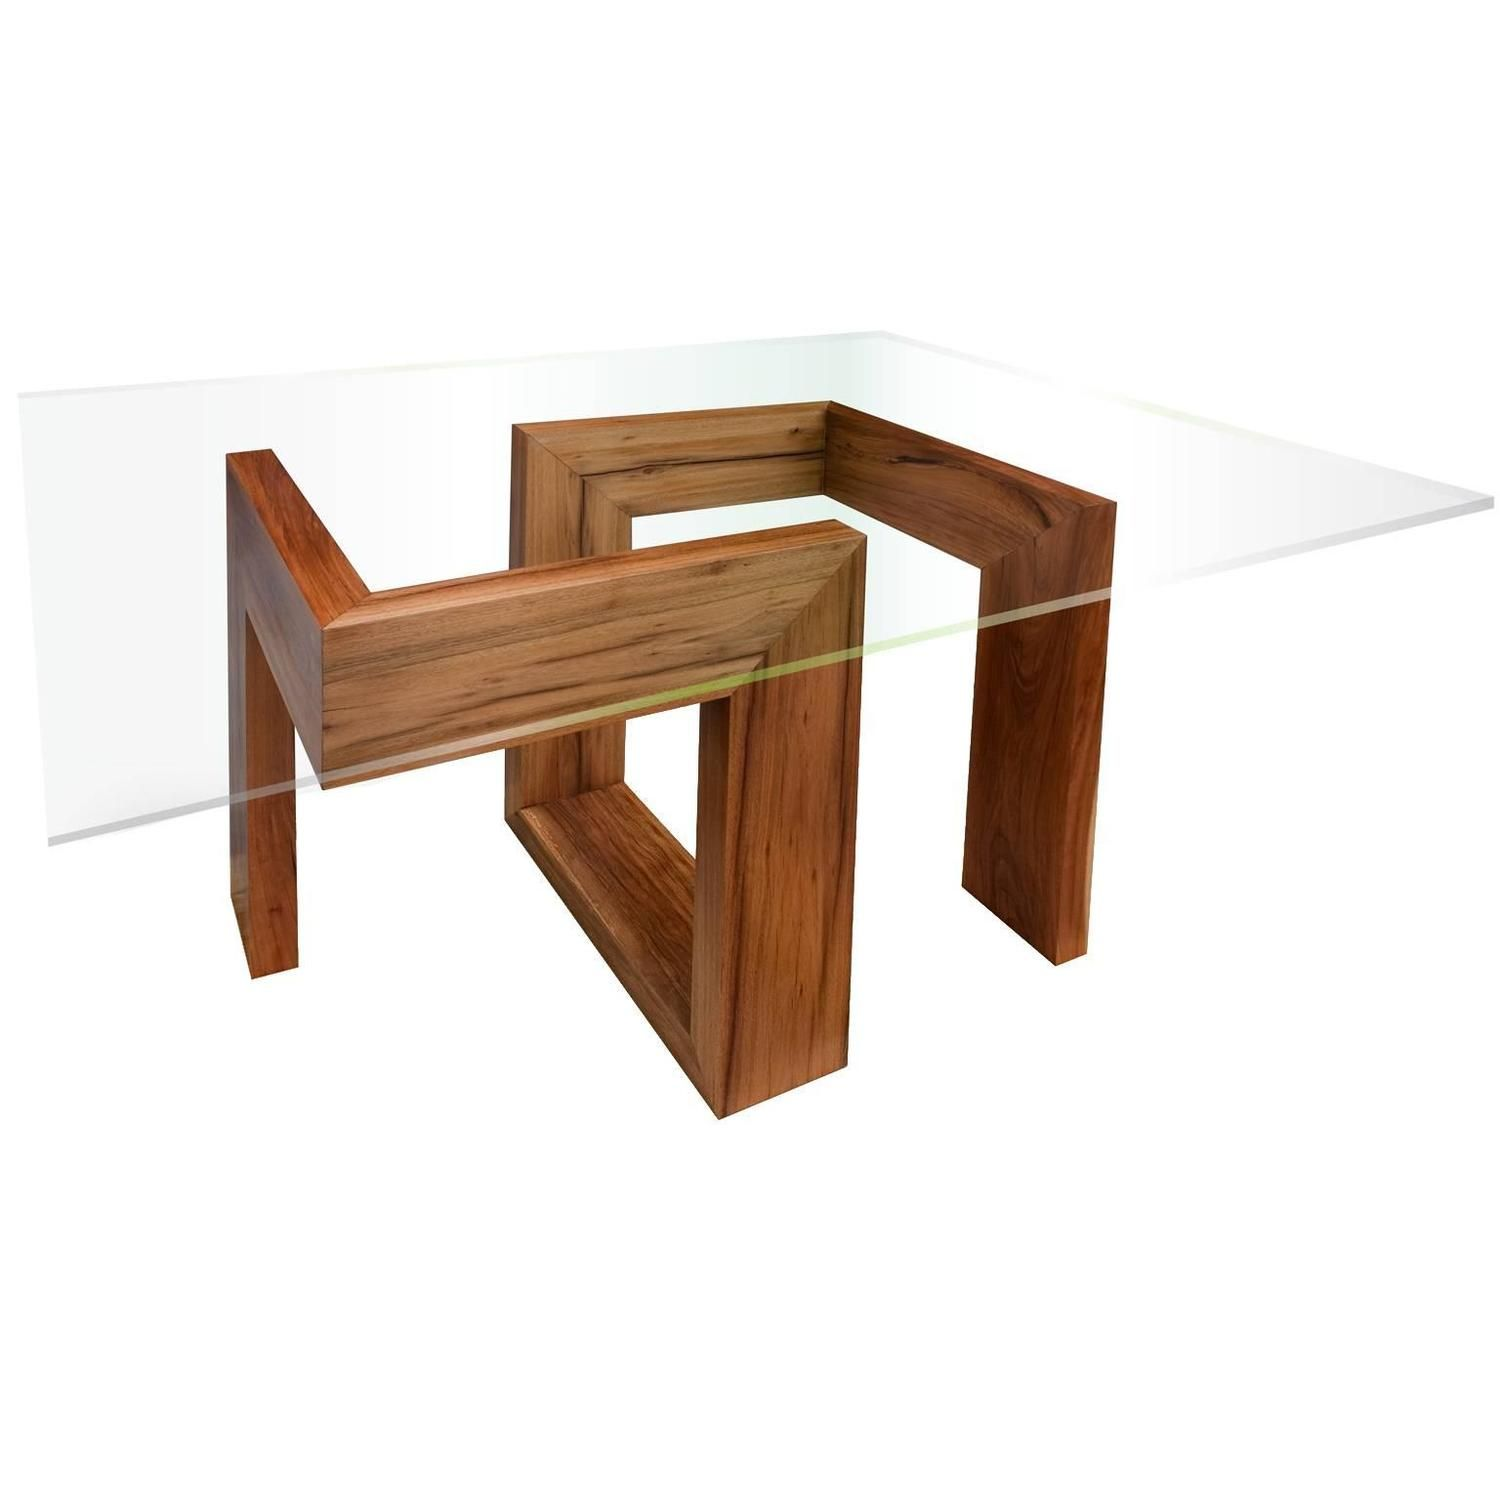 - Modern 21st-Century Solid Timber Table With Glass Top Proyectos